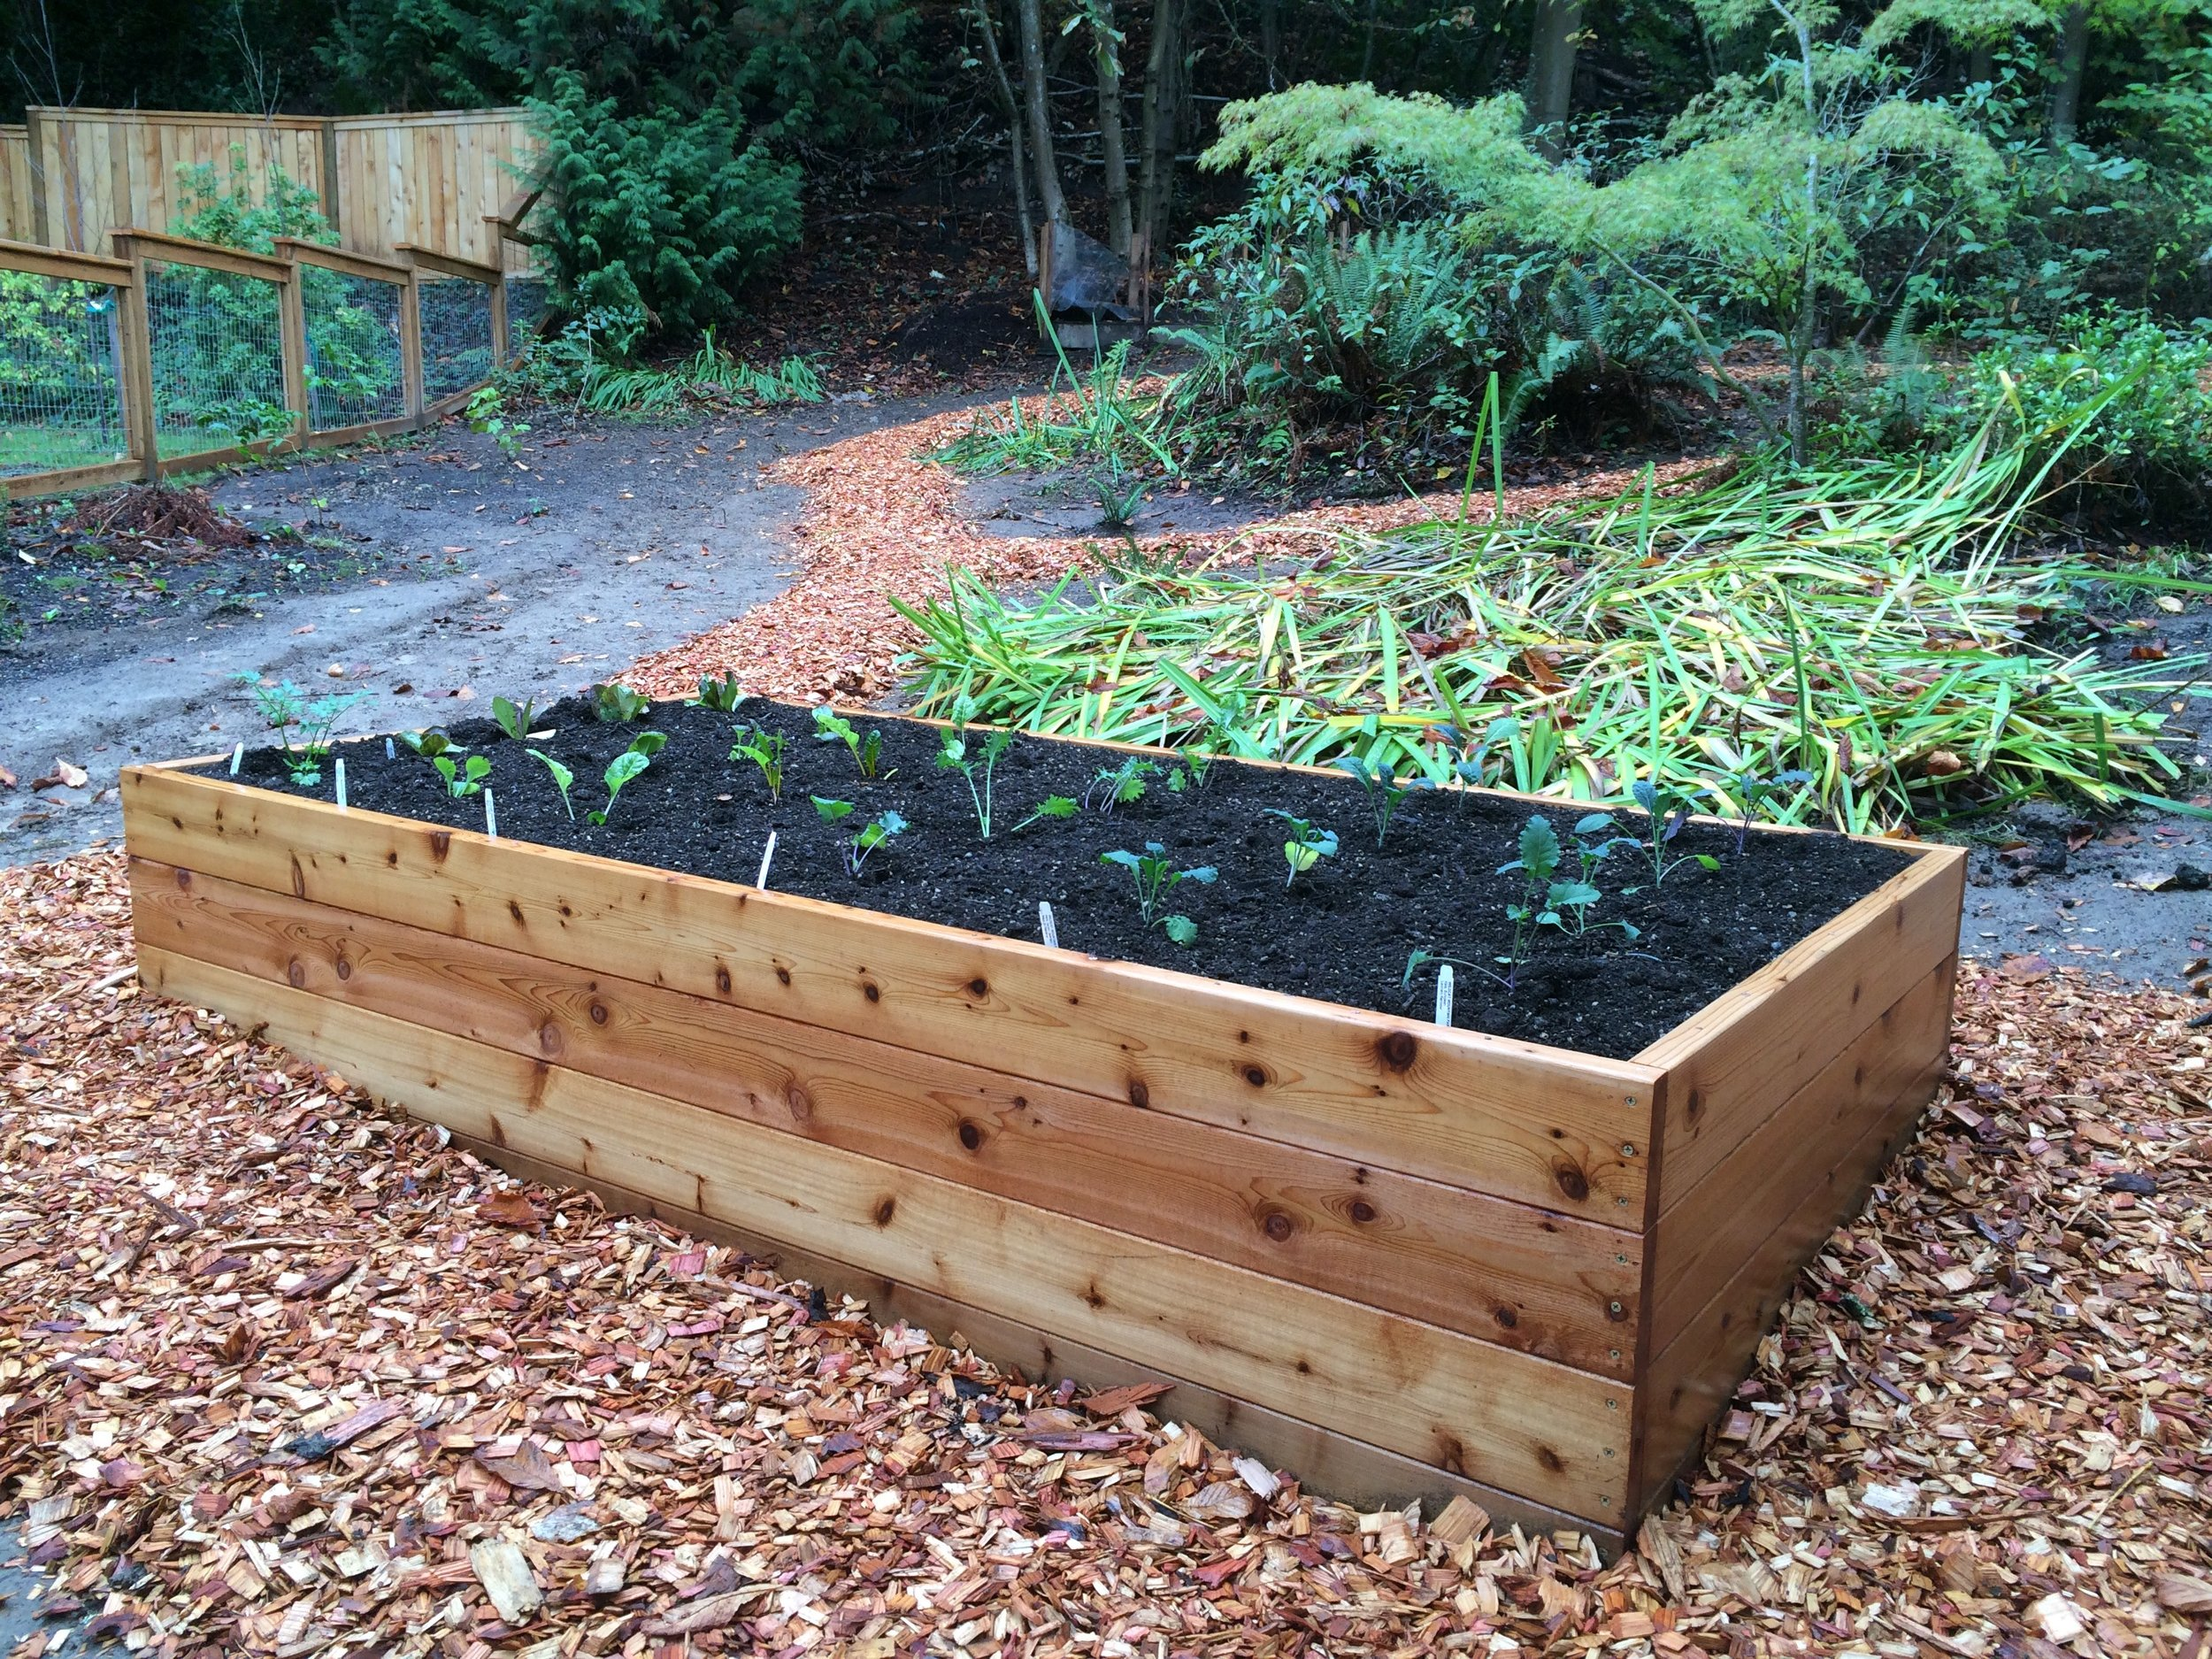 All of our raised garden beds come with a premium organic soil blend that makes growing easy!